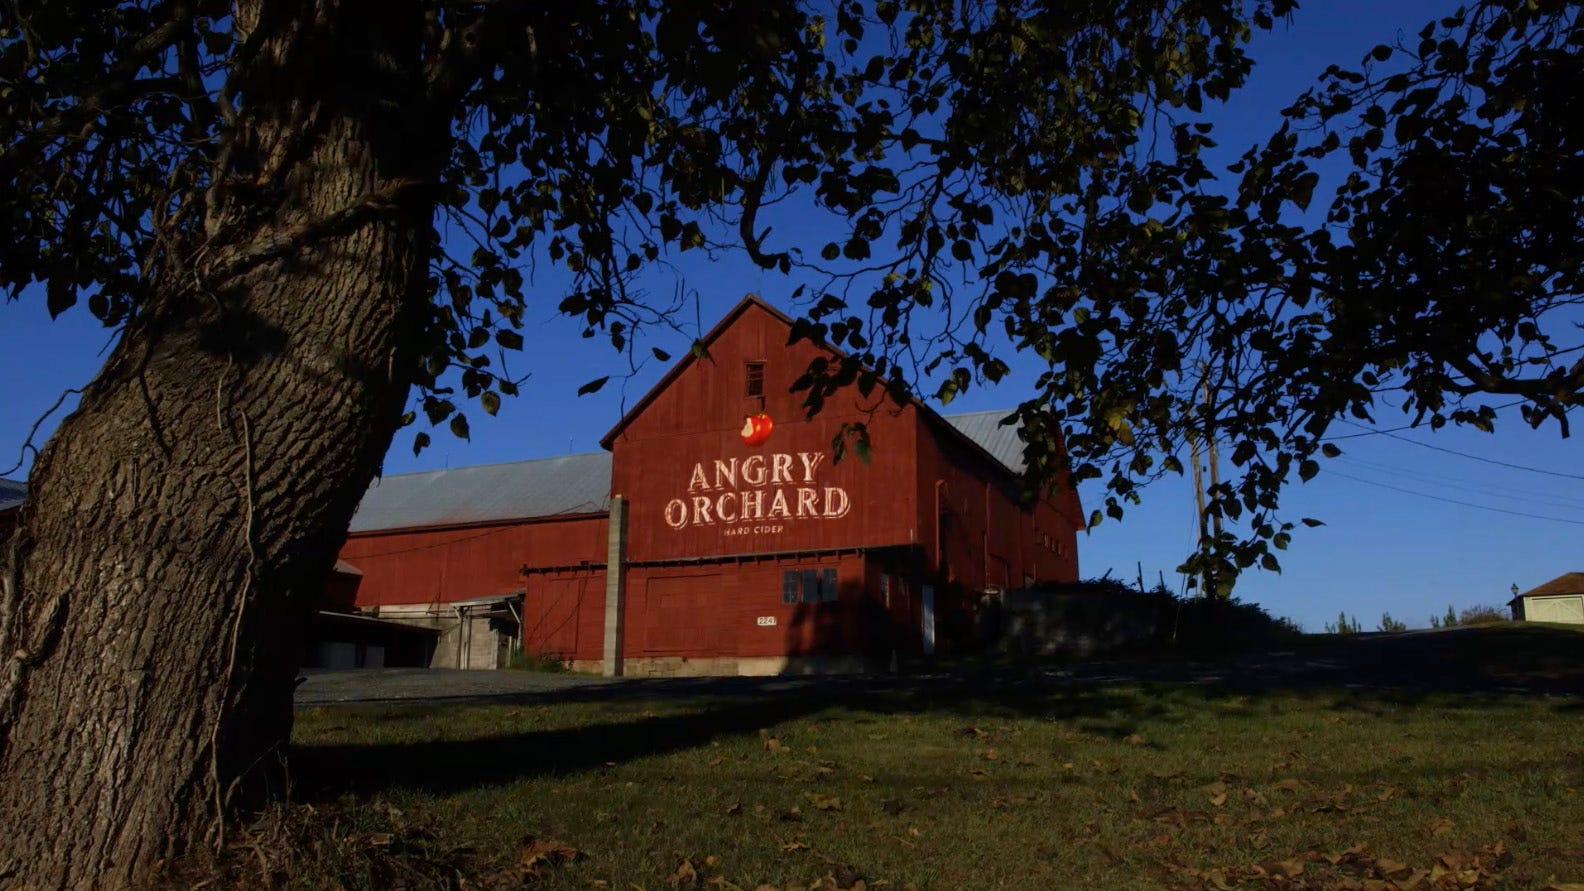 Angry Orchardu0027s 60 Acre Farm In Walden, Orange County. (Photo: Provided)